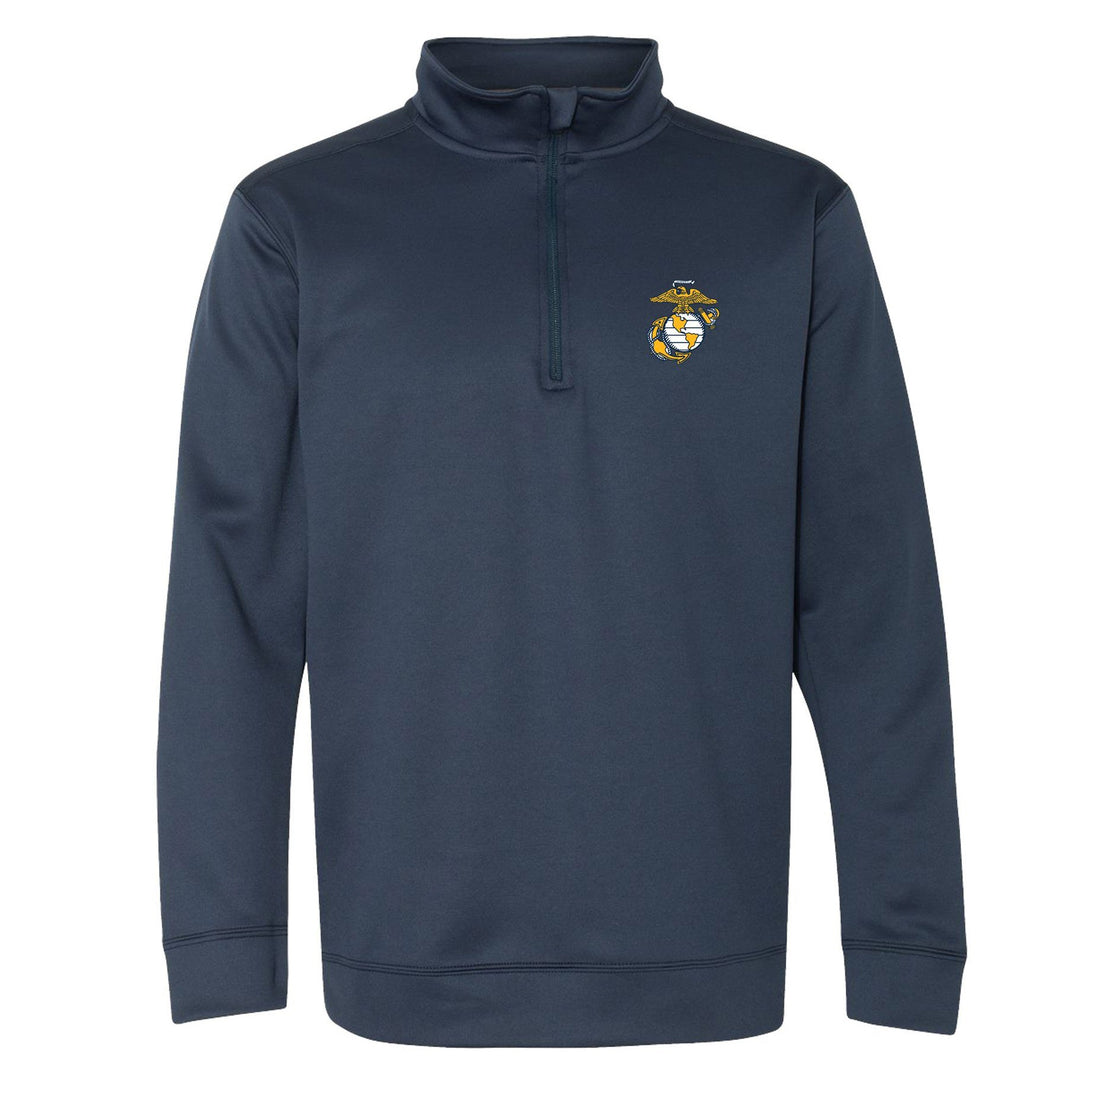 Front view of the navy-colored quarter-zip Marine Corps sweatshirt from Marine Corps direct.